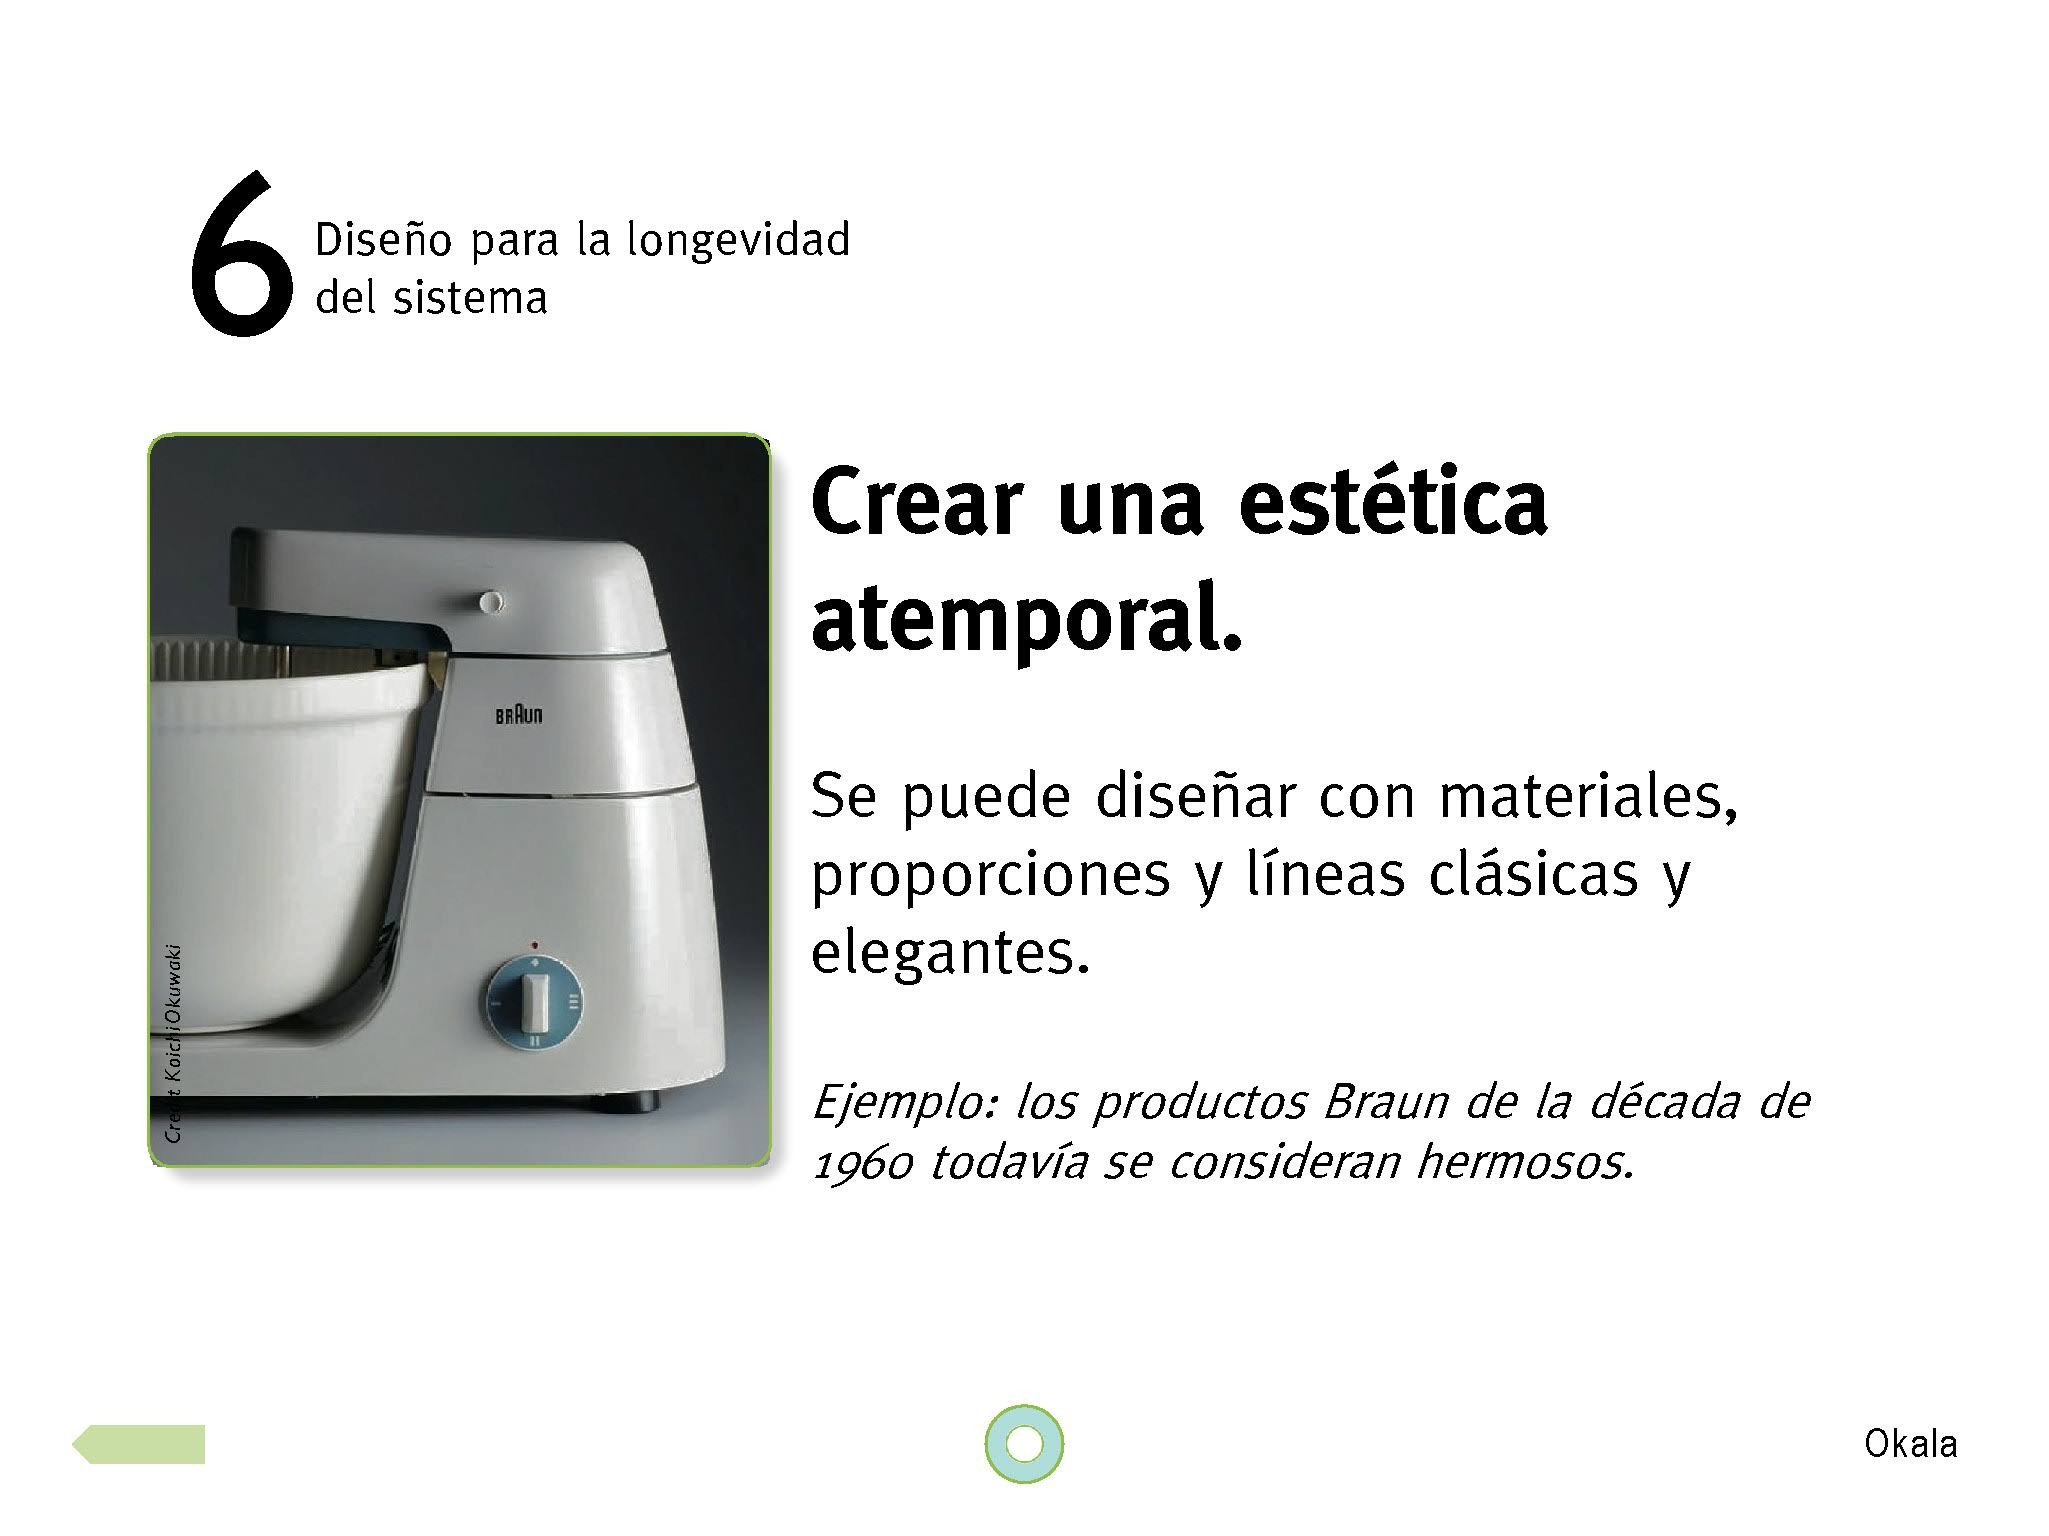 okala-ecodesign-strategy-guide-2012-spanish.new_page_36-1